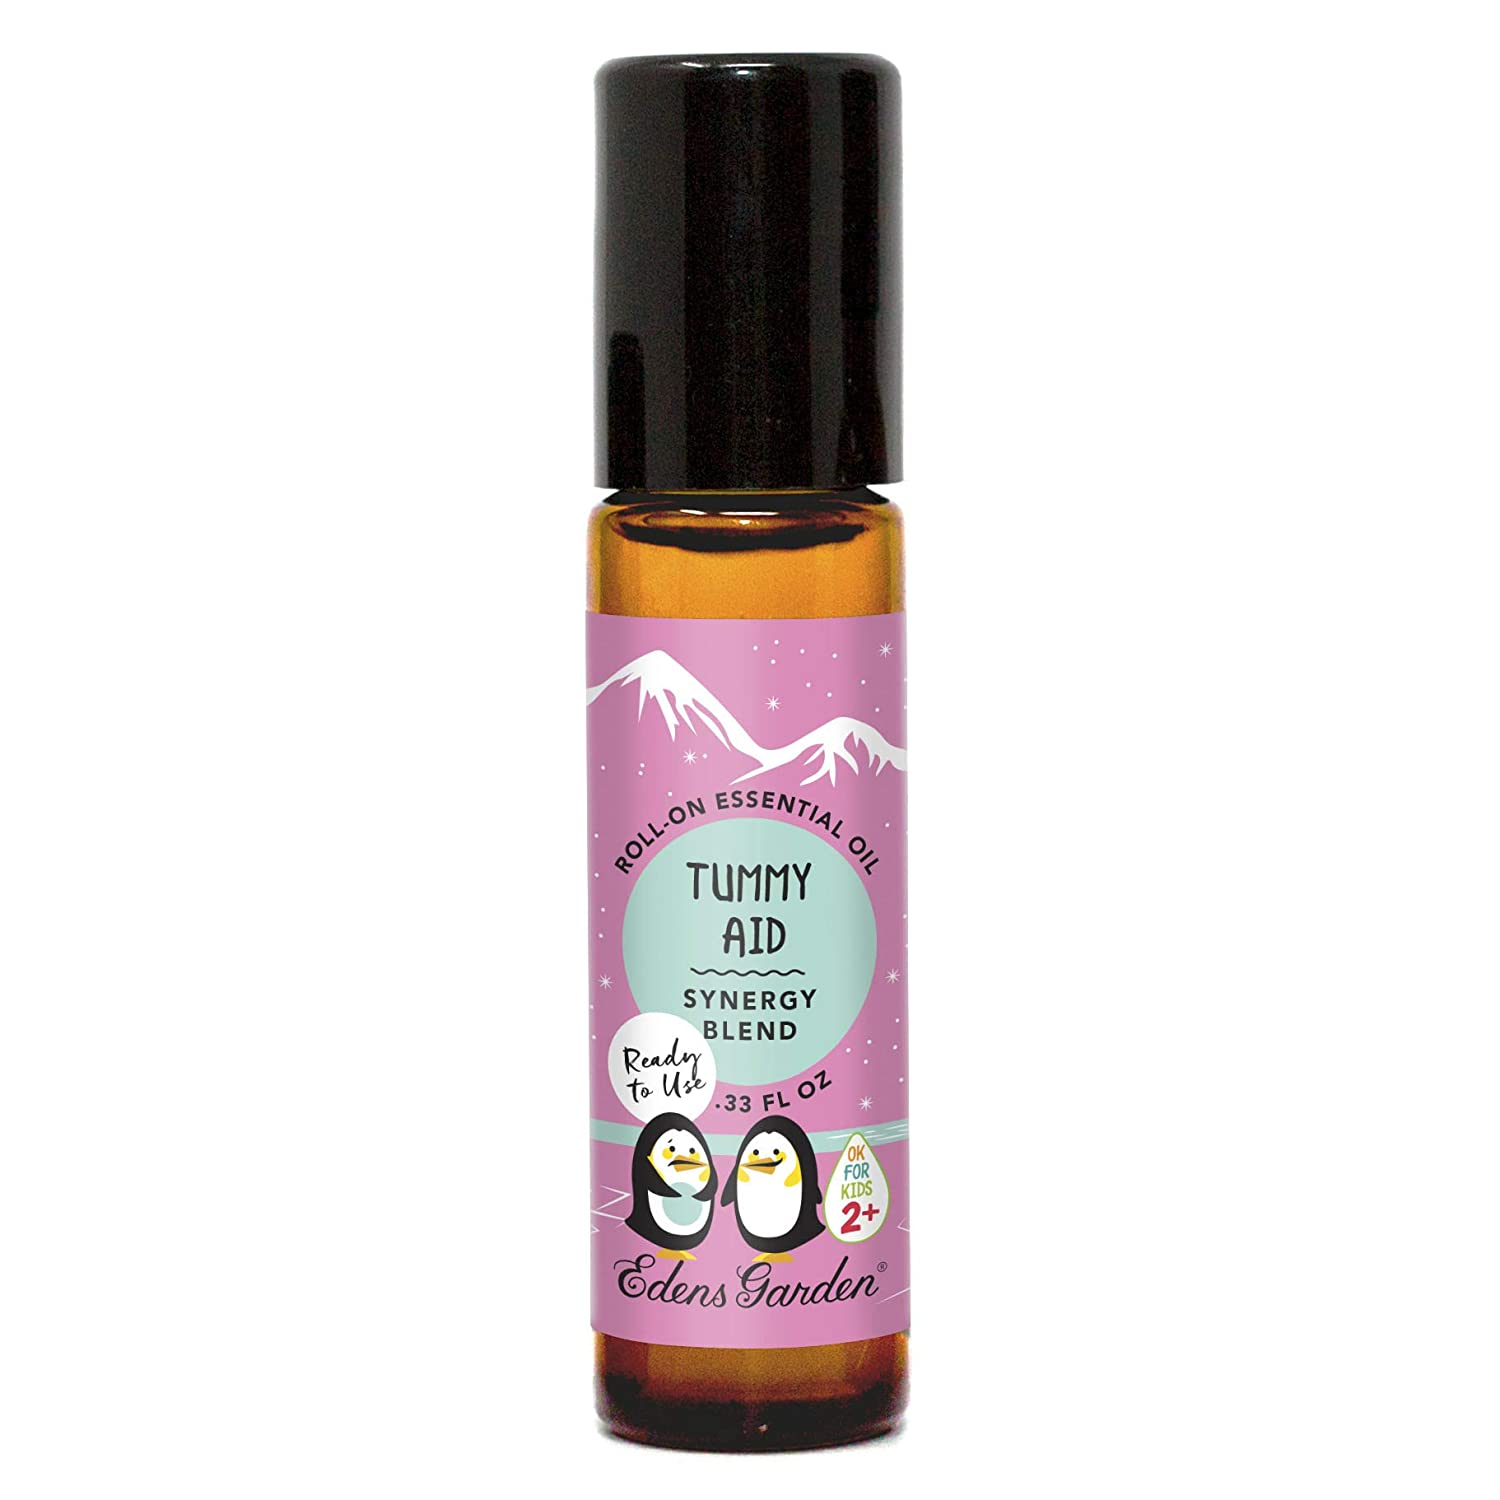 """Edens Garden Tummy Aid""""OK For Kids"""" Essential Oil Synergy Blend, 100% Pure Therapeutic Grade (Child Safe 2+, Pre-Diluted & Ready To Use- Digestion & Pain), 10 ml Roll-On"""